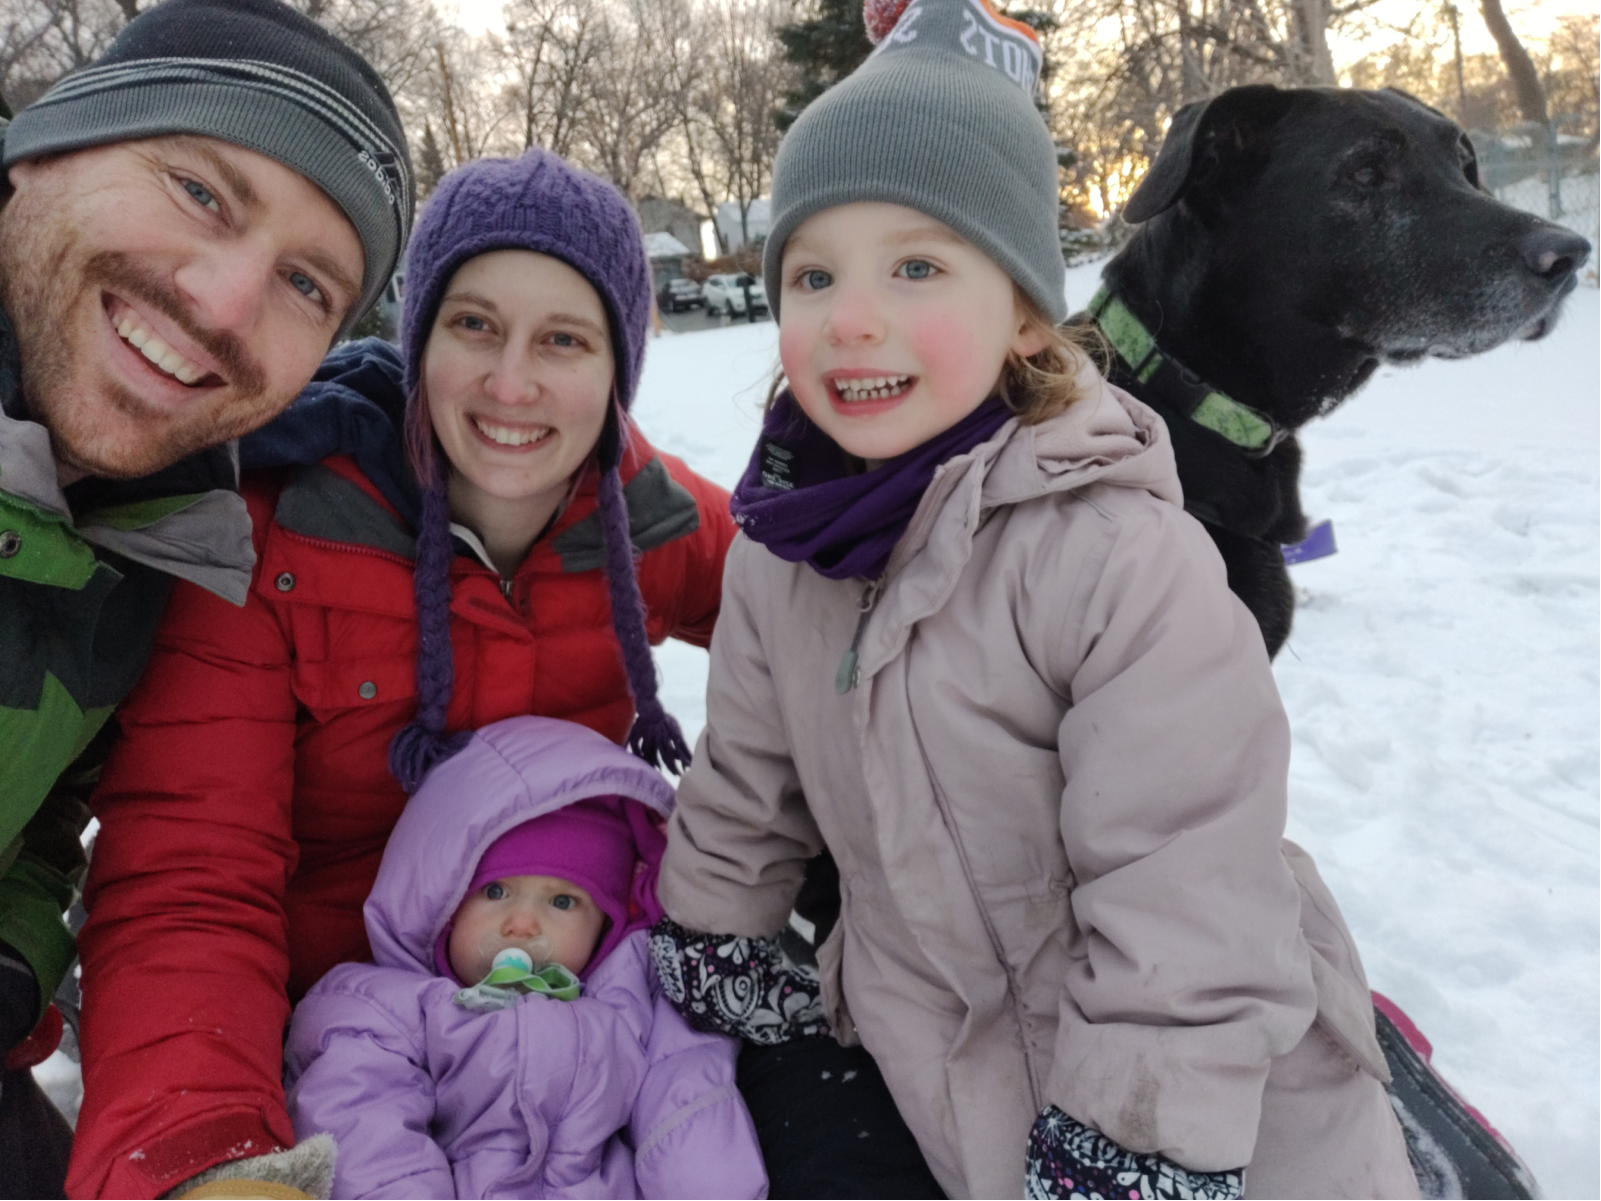 Leana in the snow with her husband, 2 kids, and dog.